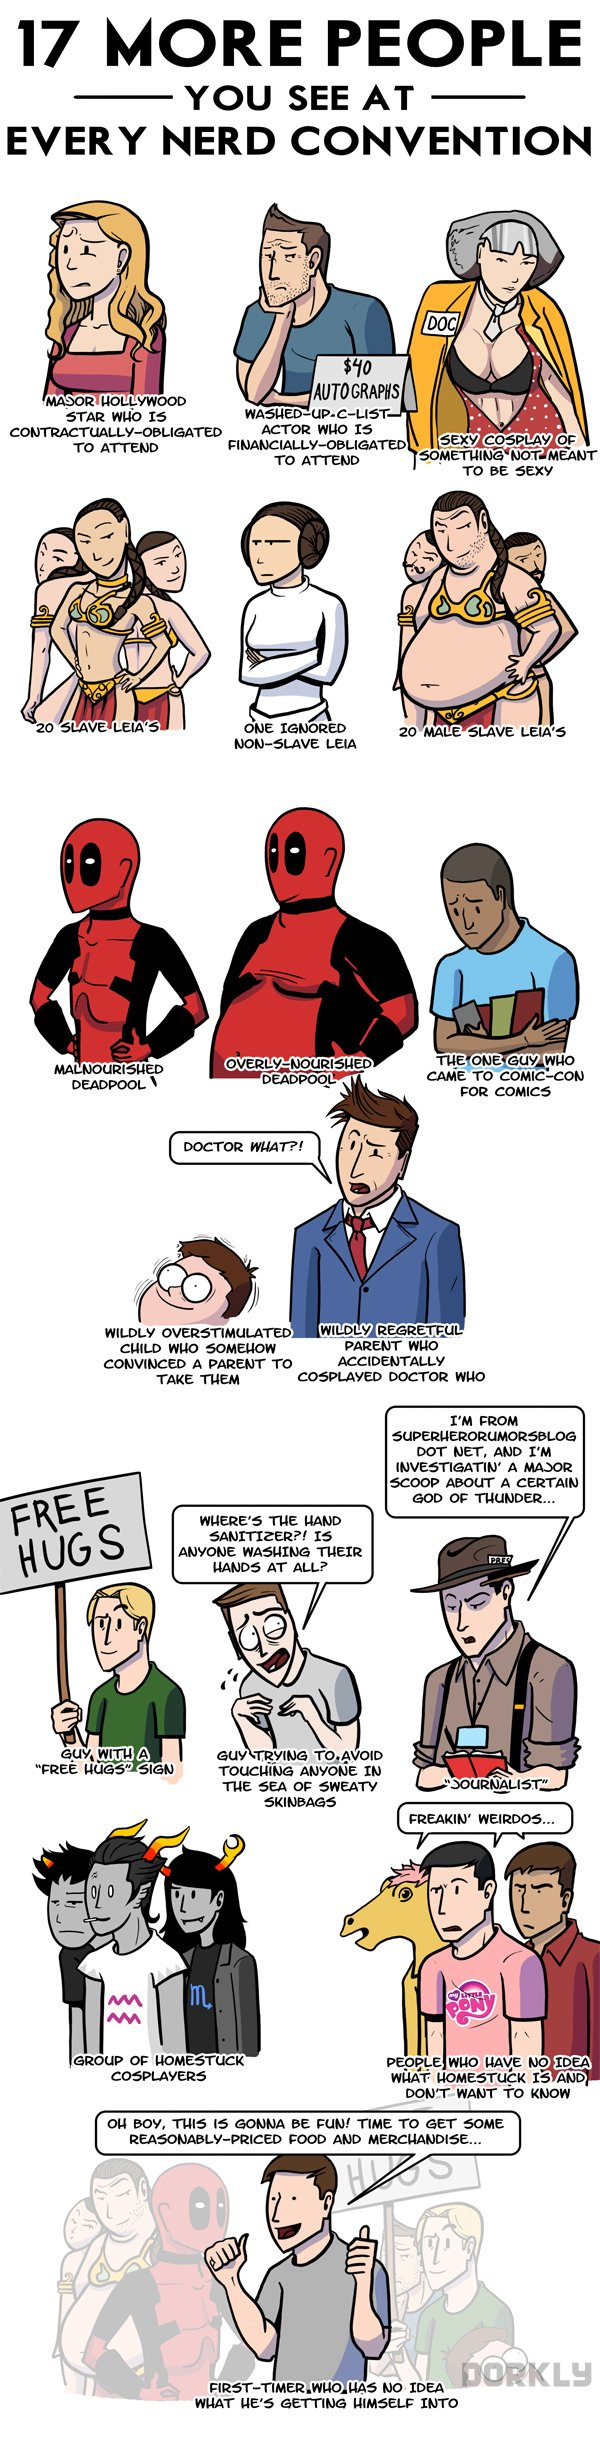 people-nerd-conventions